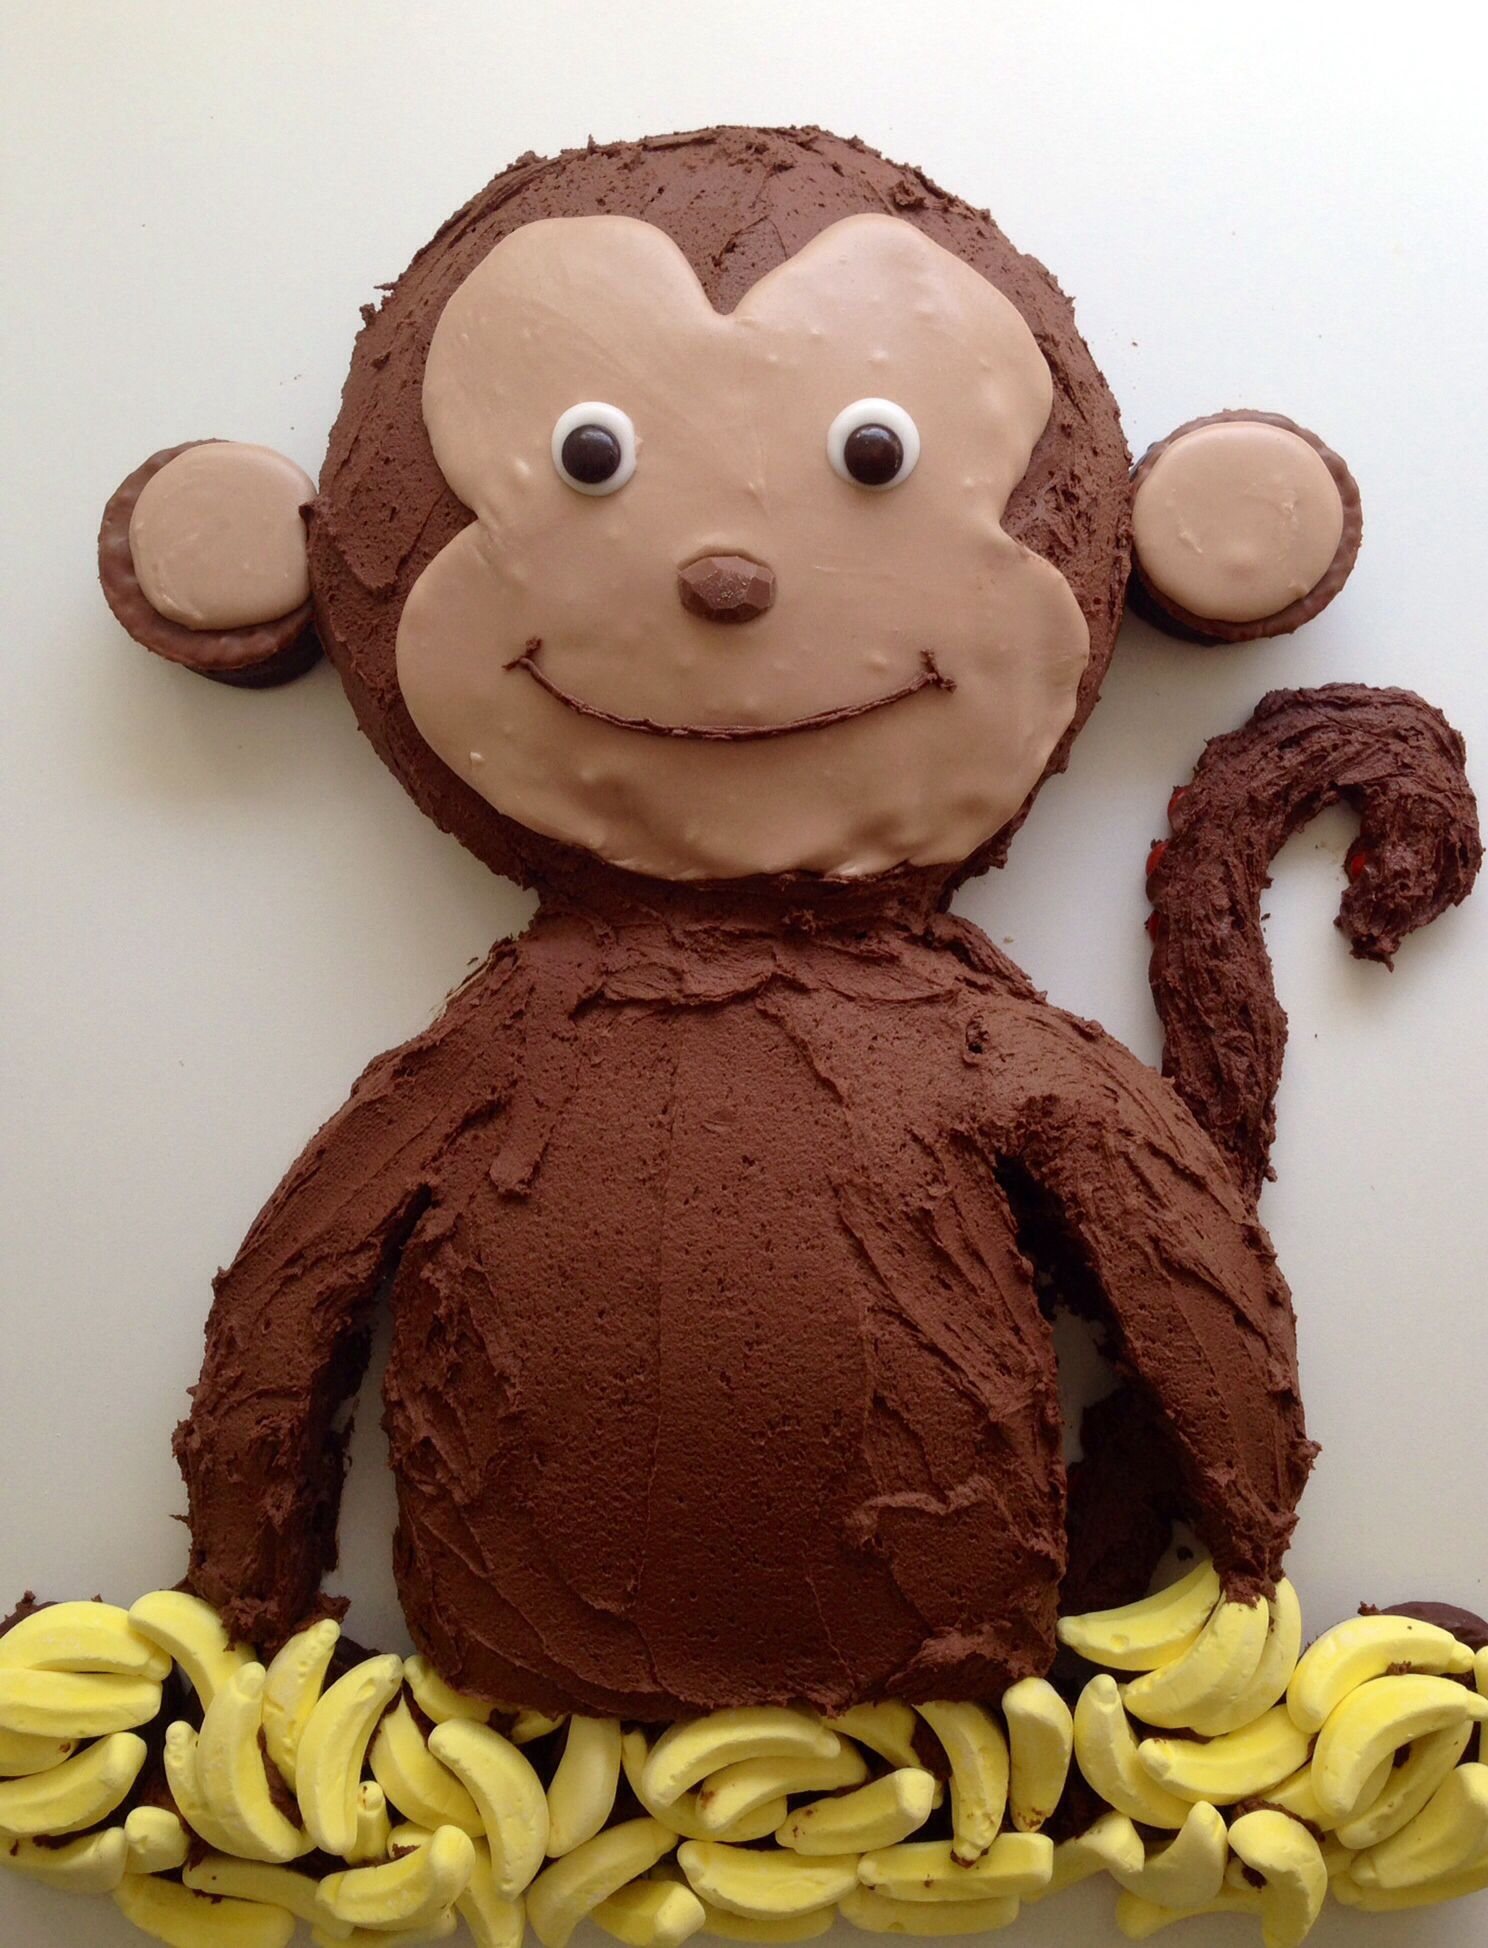 Monkey Chocolate Cake